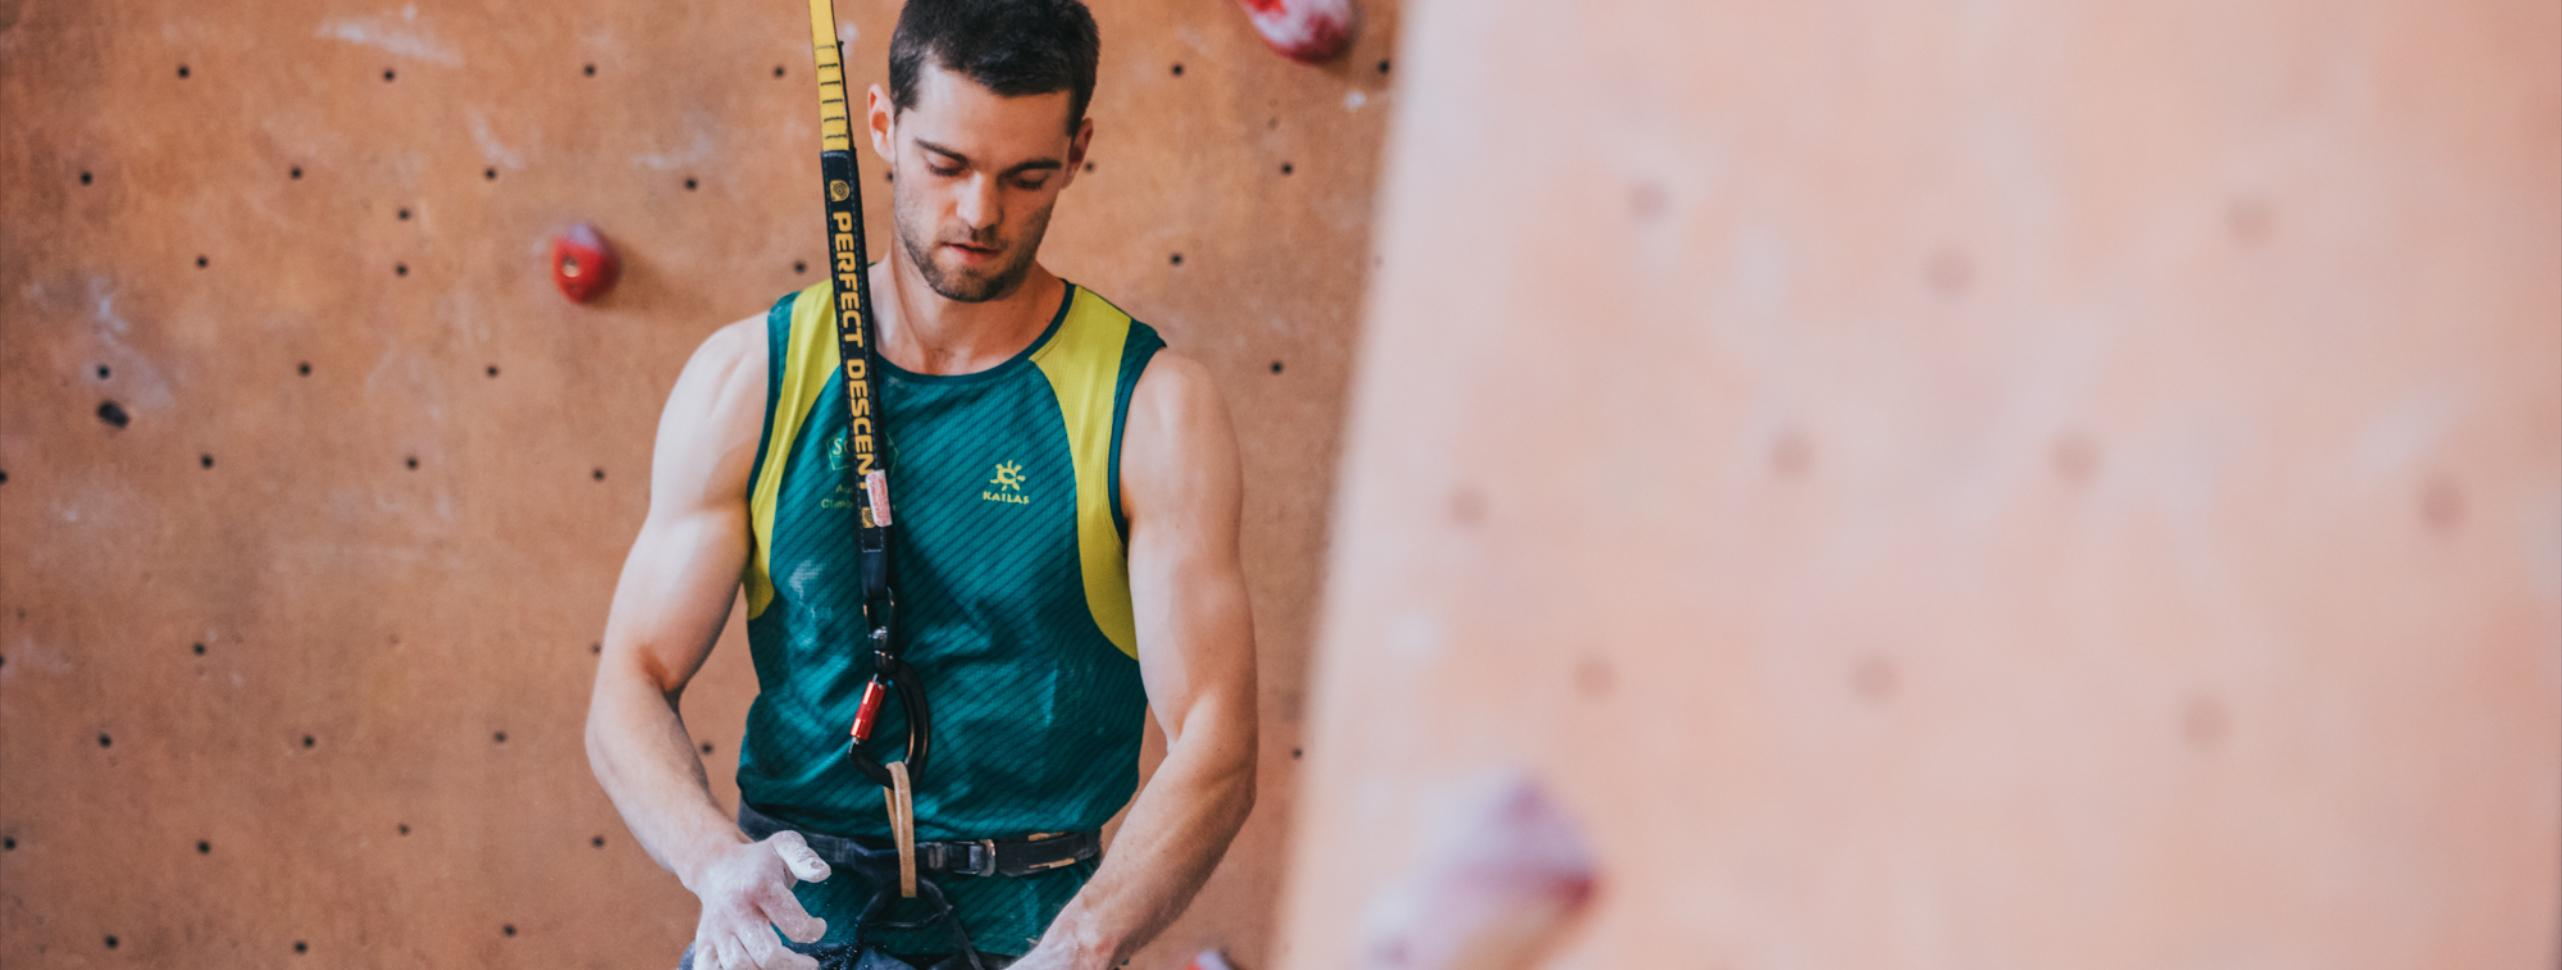 PERFECT DESCENT: AUTO BELAY SUPPLIER TO TOKYO 2020 OLYMPIC GAMES